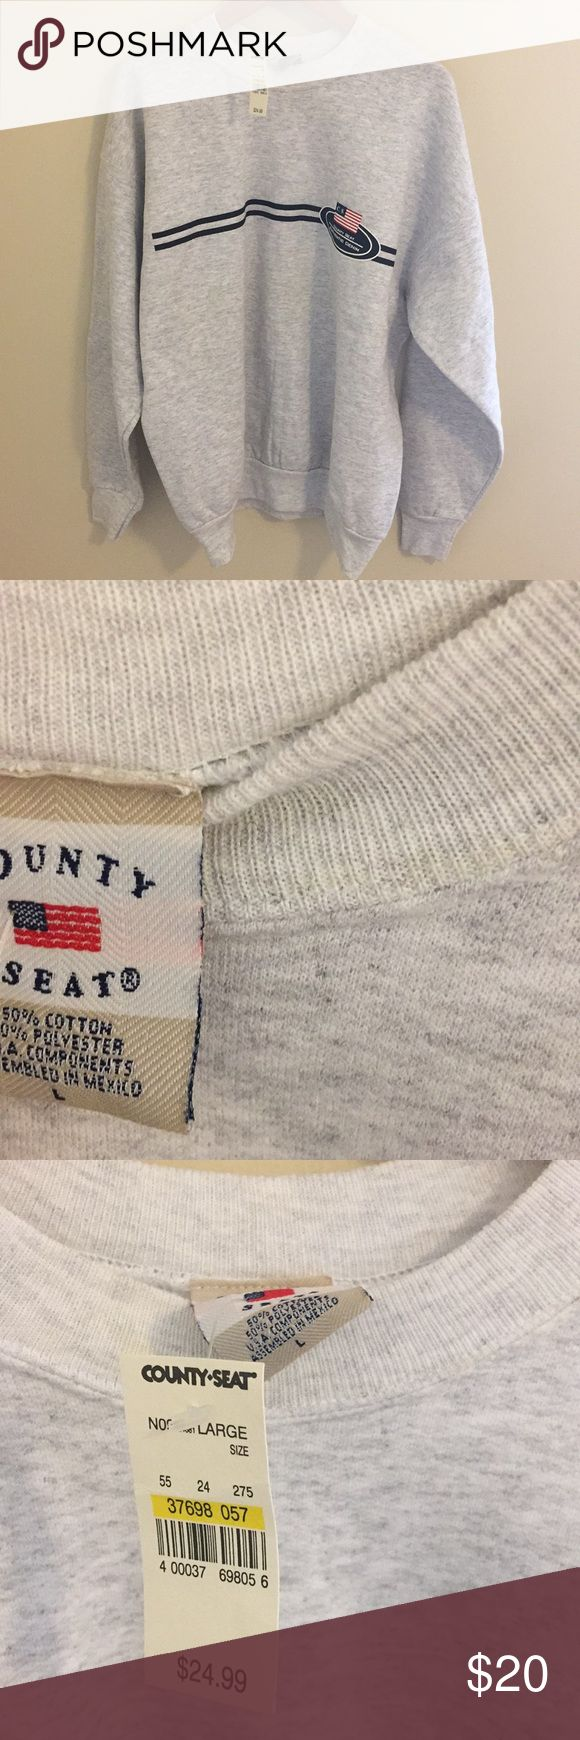 County Seat Vintage Sweatshirt Vintage, purchased in 1999 when stores closed, Heather gray, chest logo, crew neck, size large, new with tag, retail $24.99 county seat Shirts Sweatshirts & Hoodies